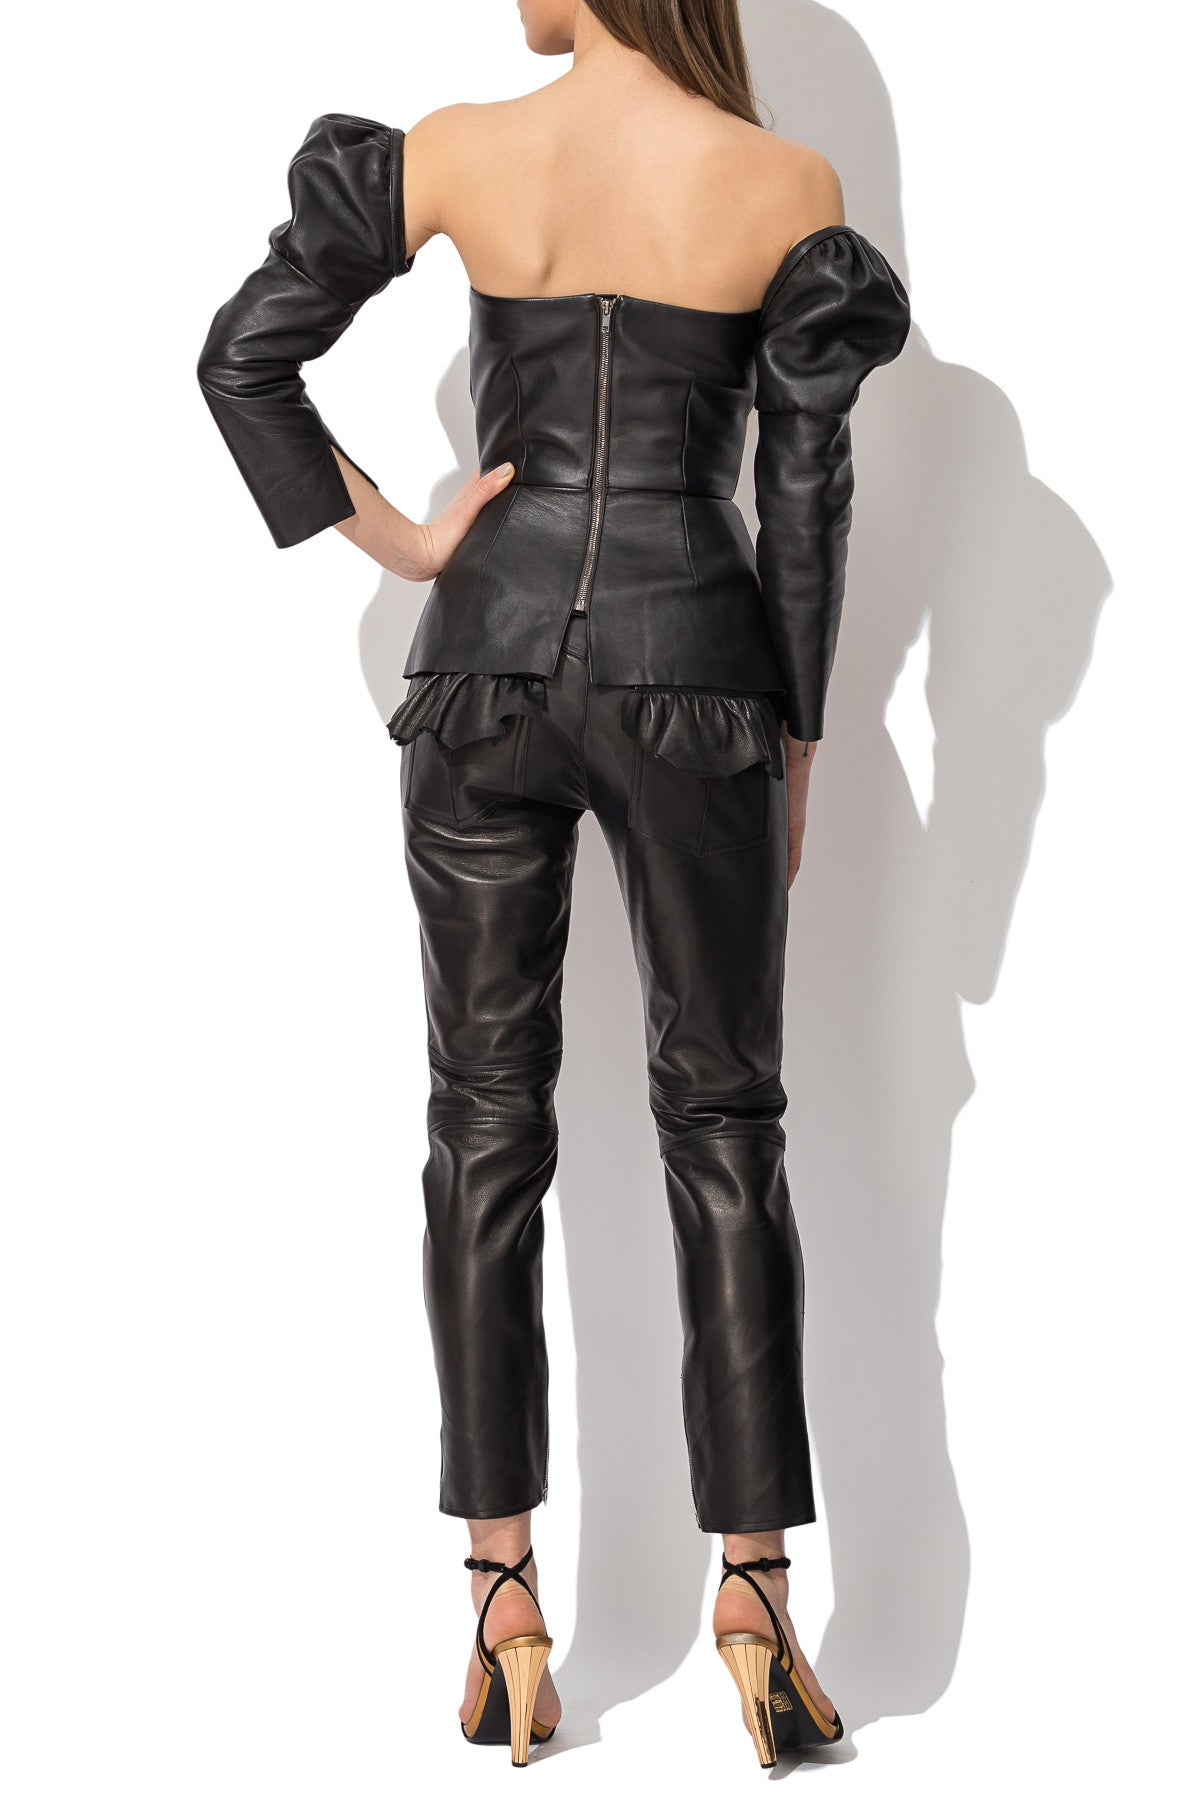 Leather Top with Detachable Sleeves, Top - A.A Design